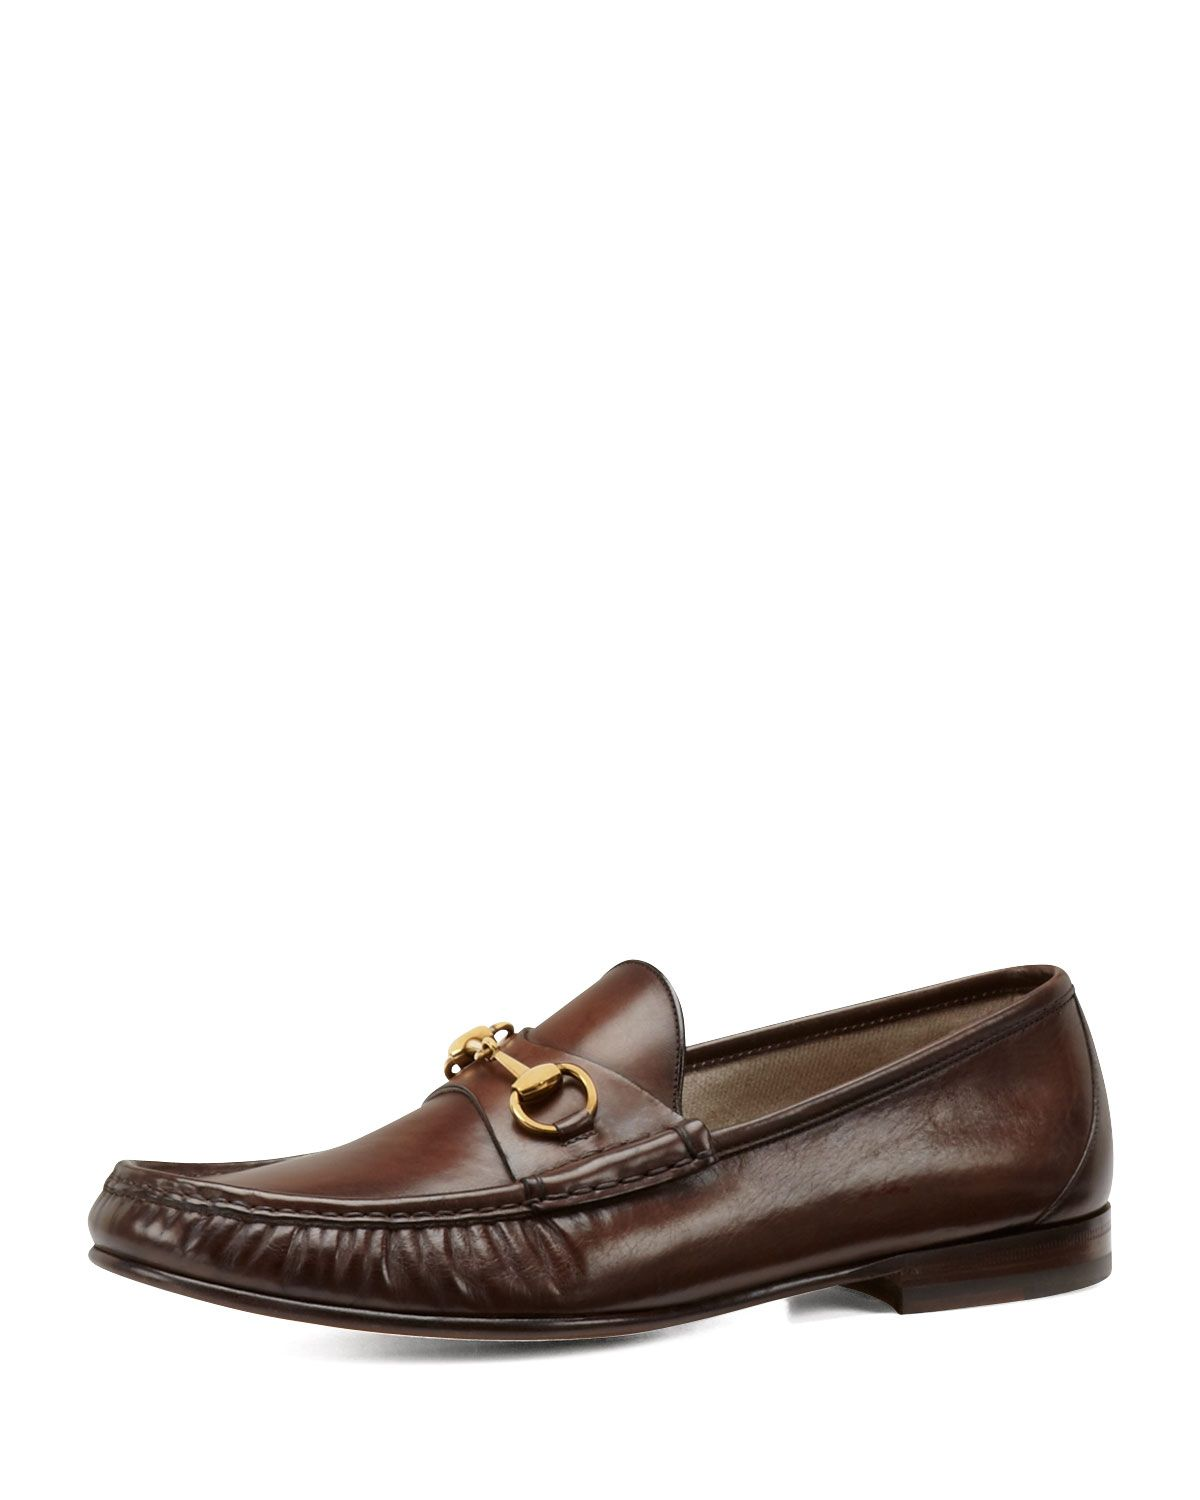 719f6cab7fd Gucci Leather Horsebit Loafer